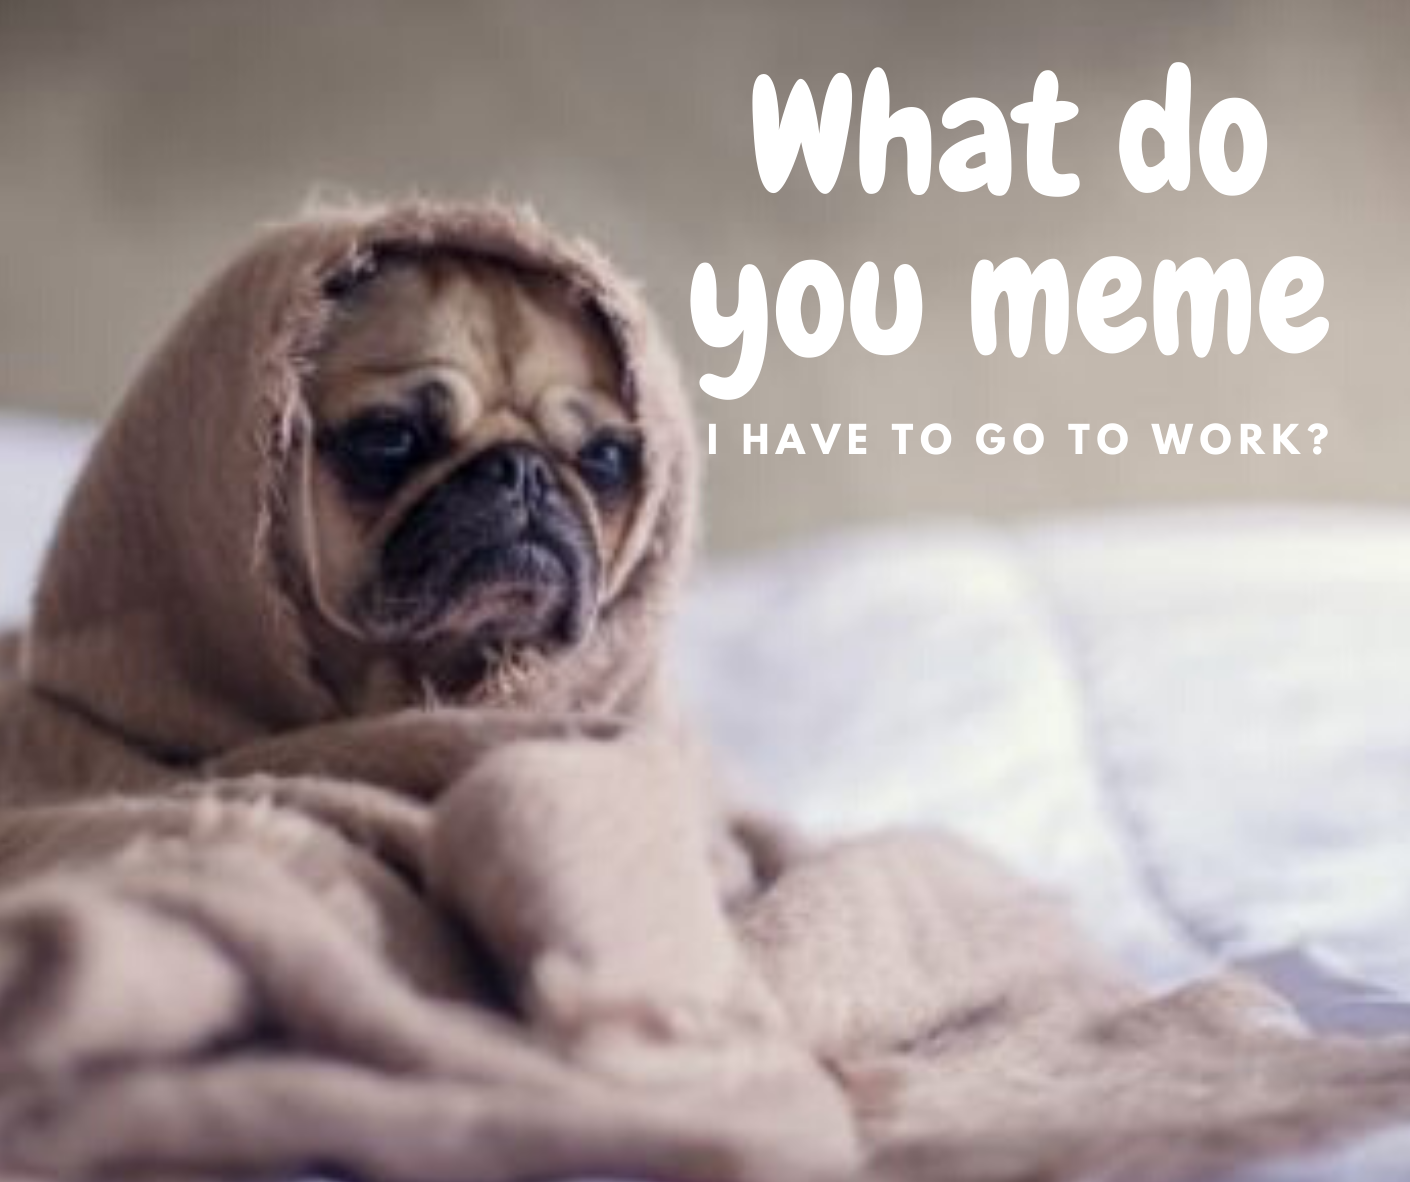 Merging Memes into Your Marketing